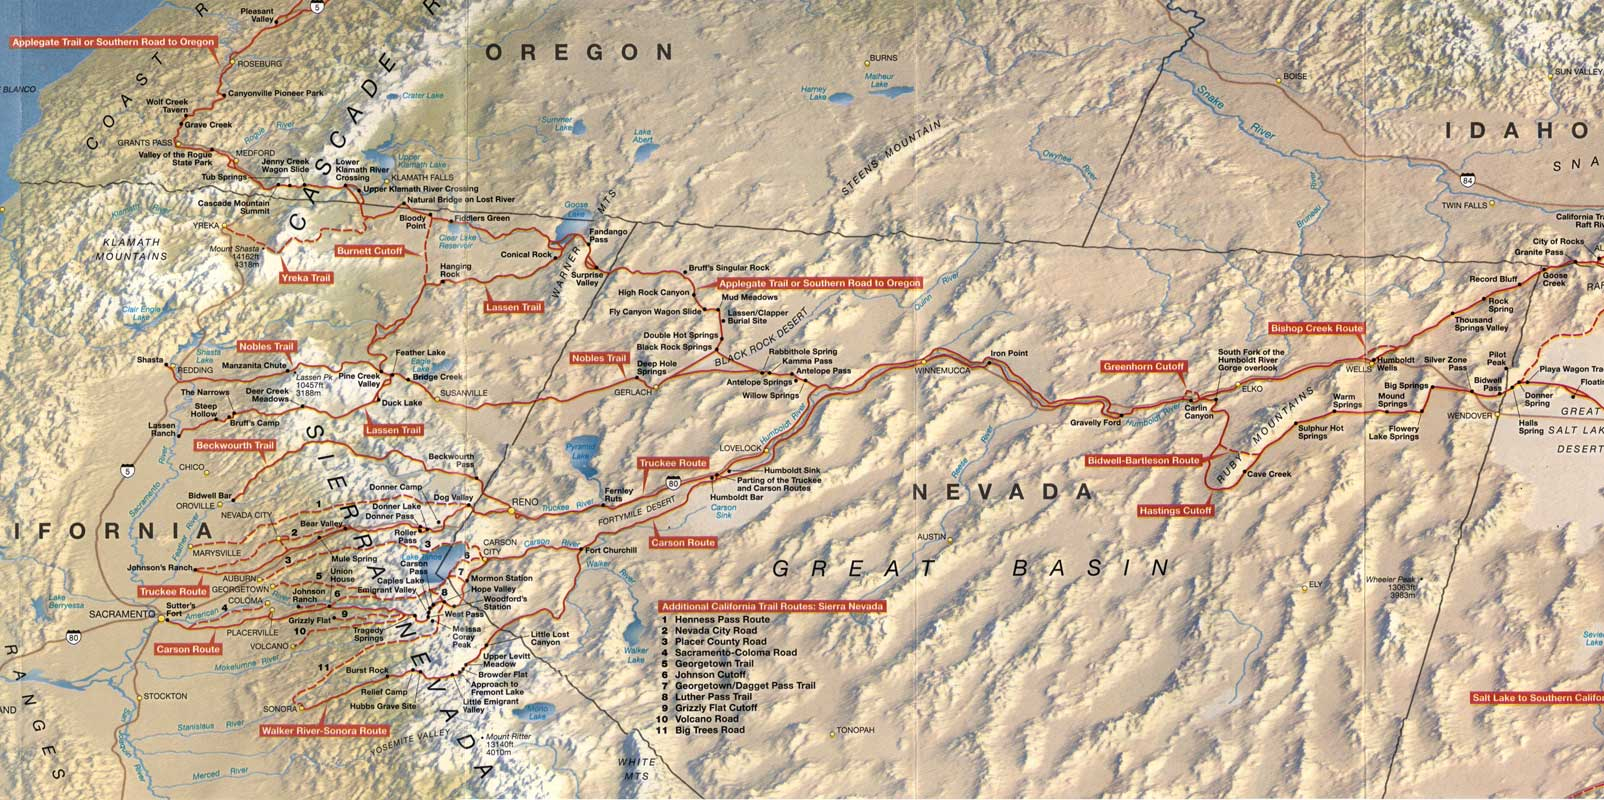 California Trail West Best Of Detail Map Oregon California Trail Map - Southern California Trail Maps